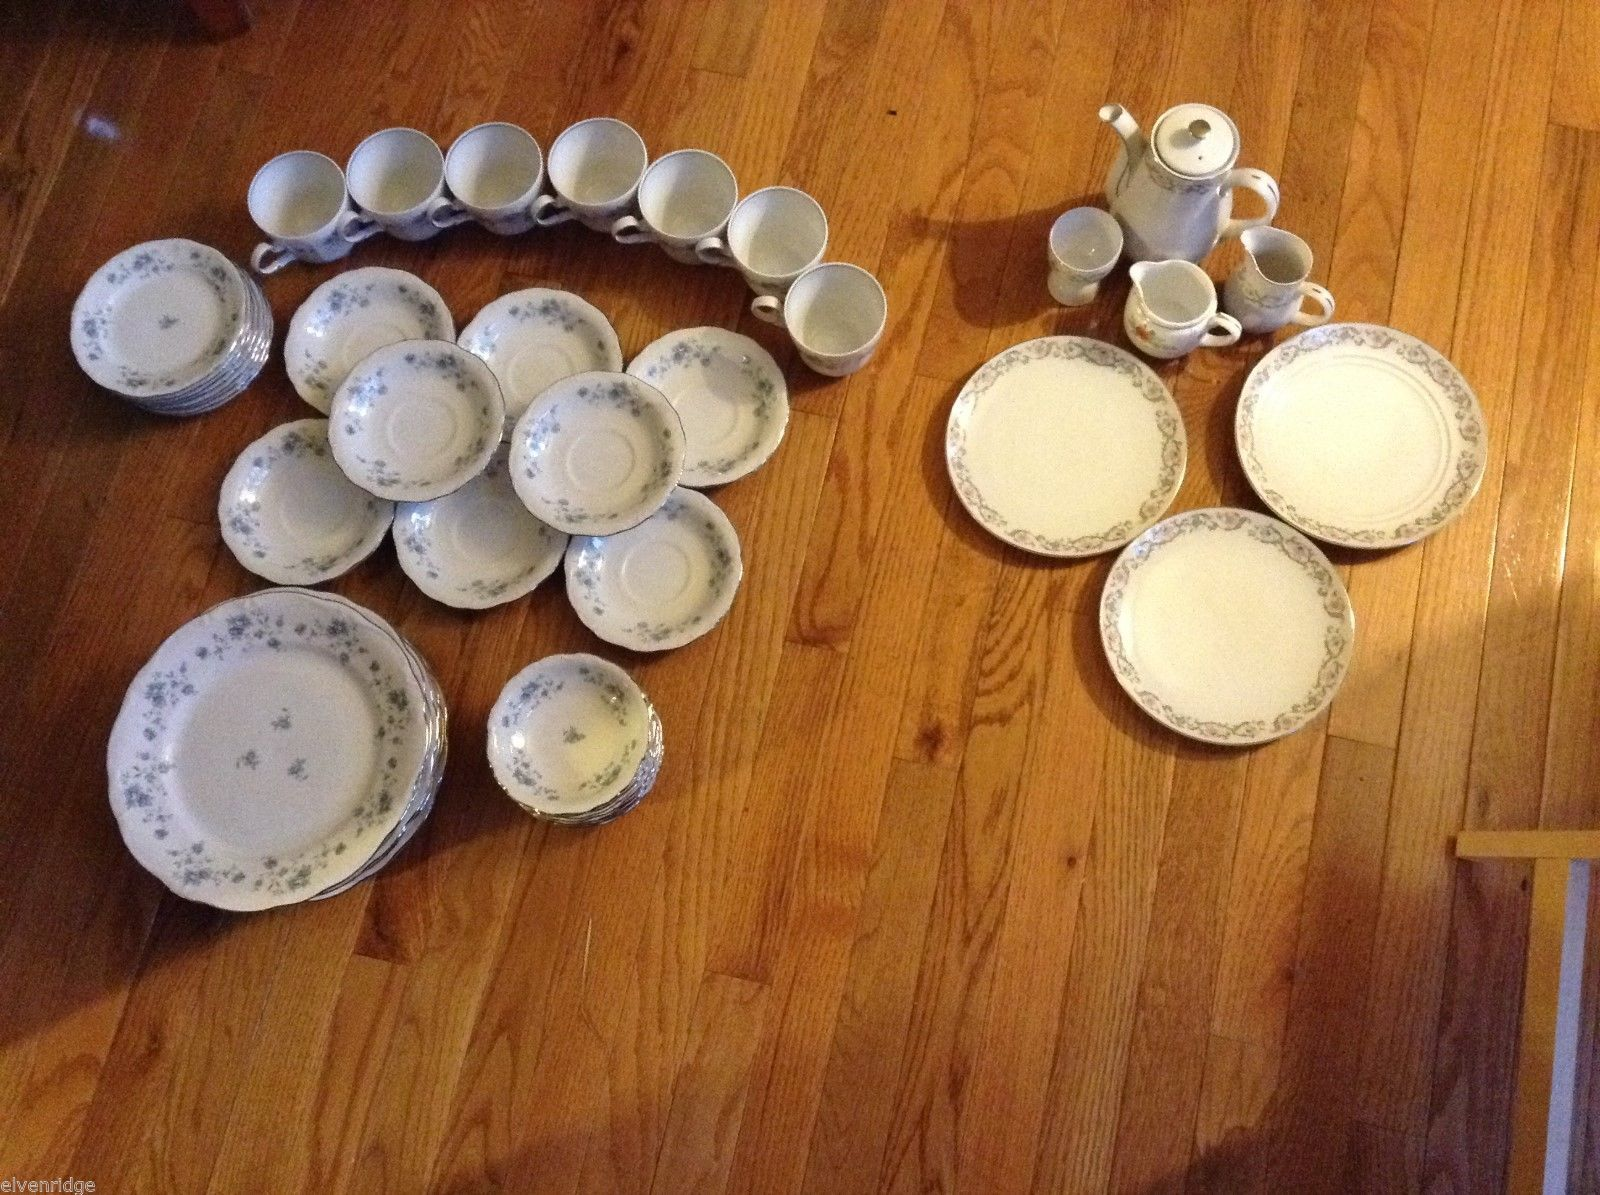 Lot of 2 Floral Dish Sets